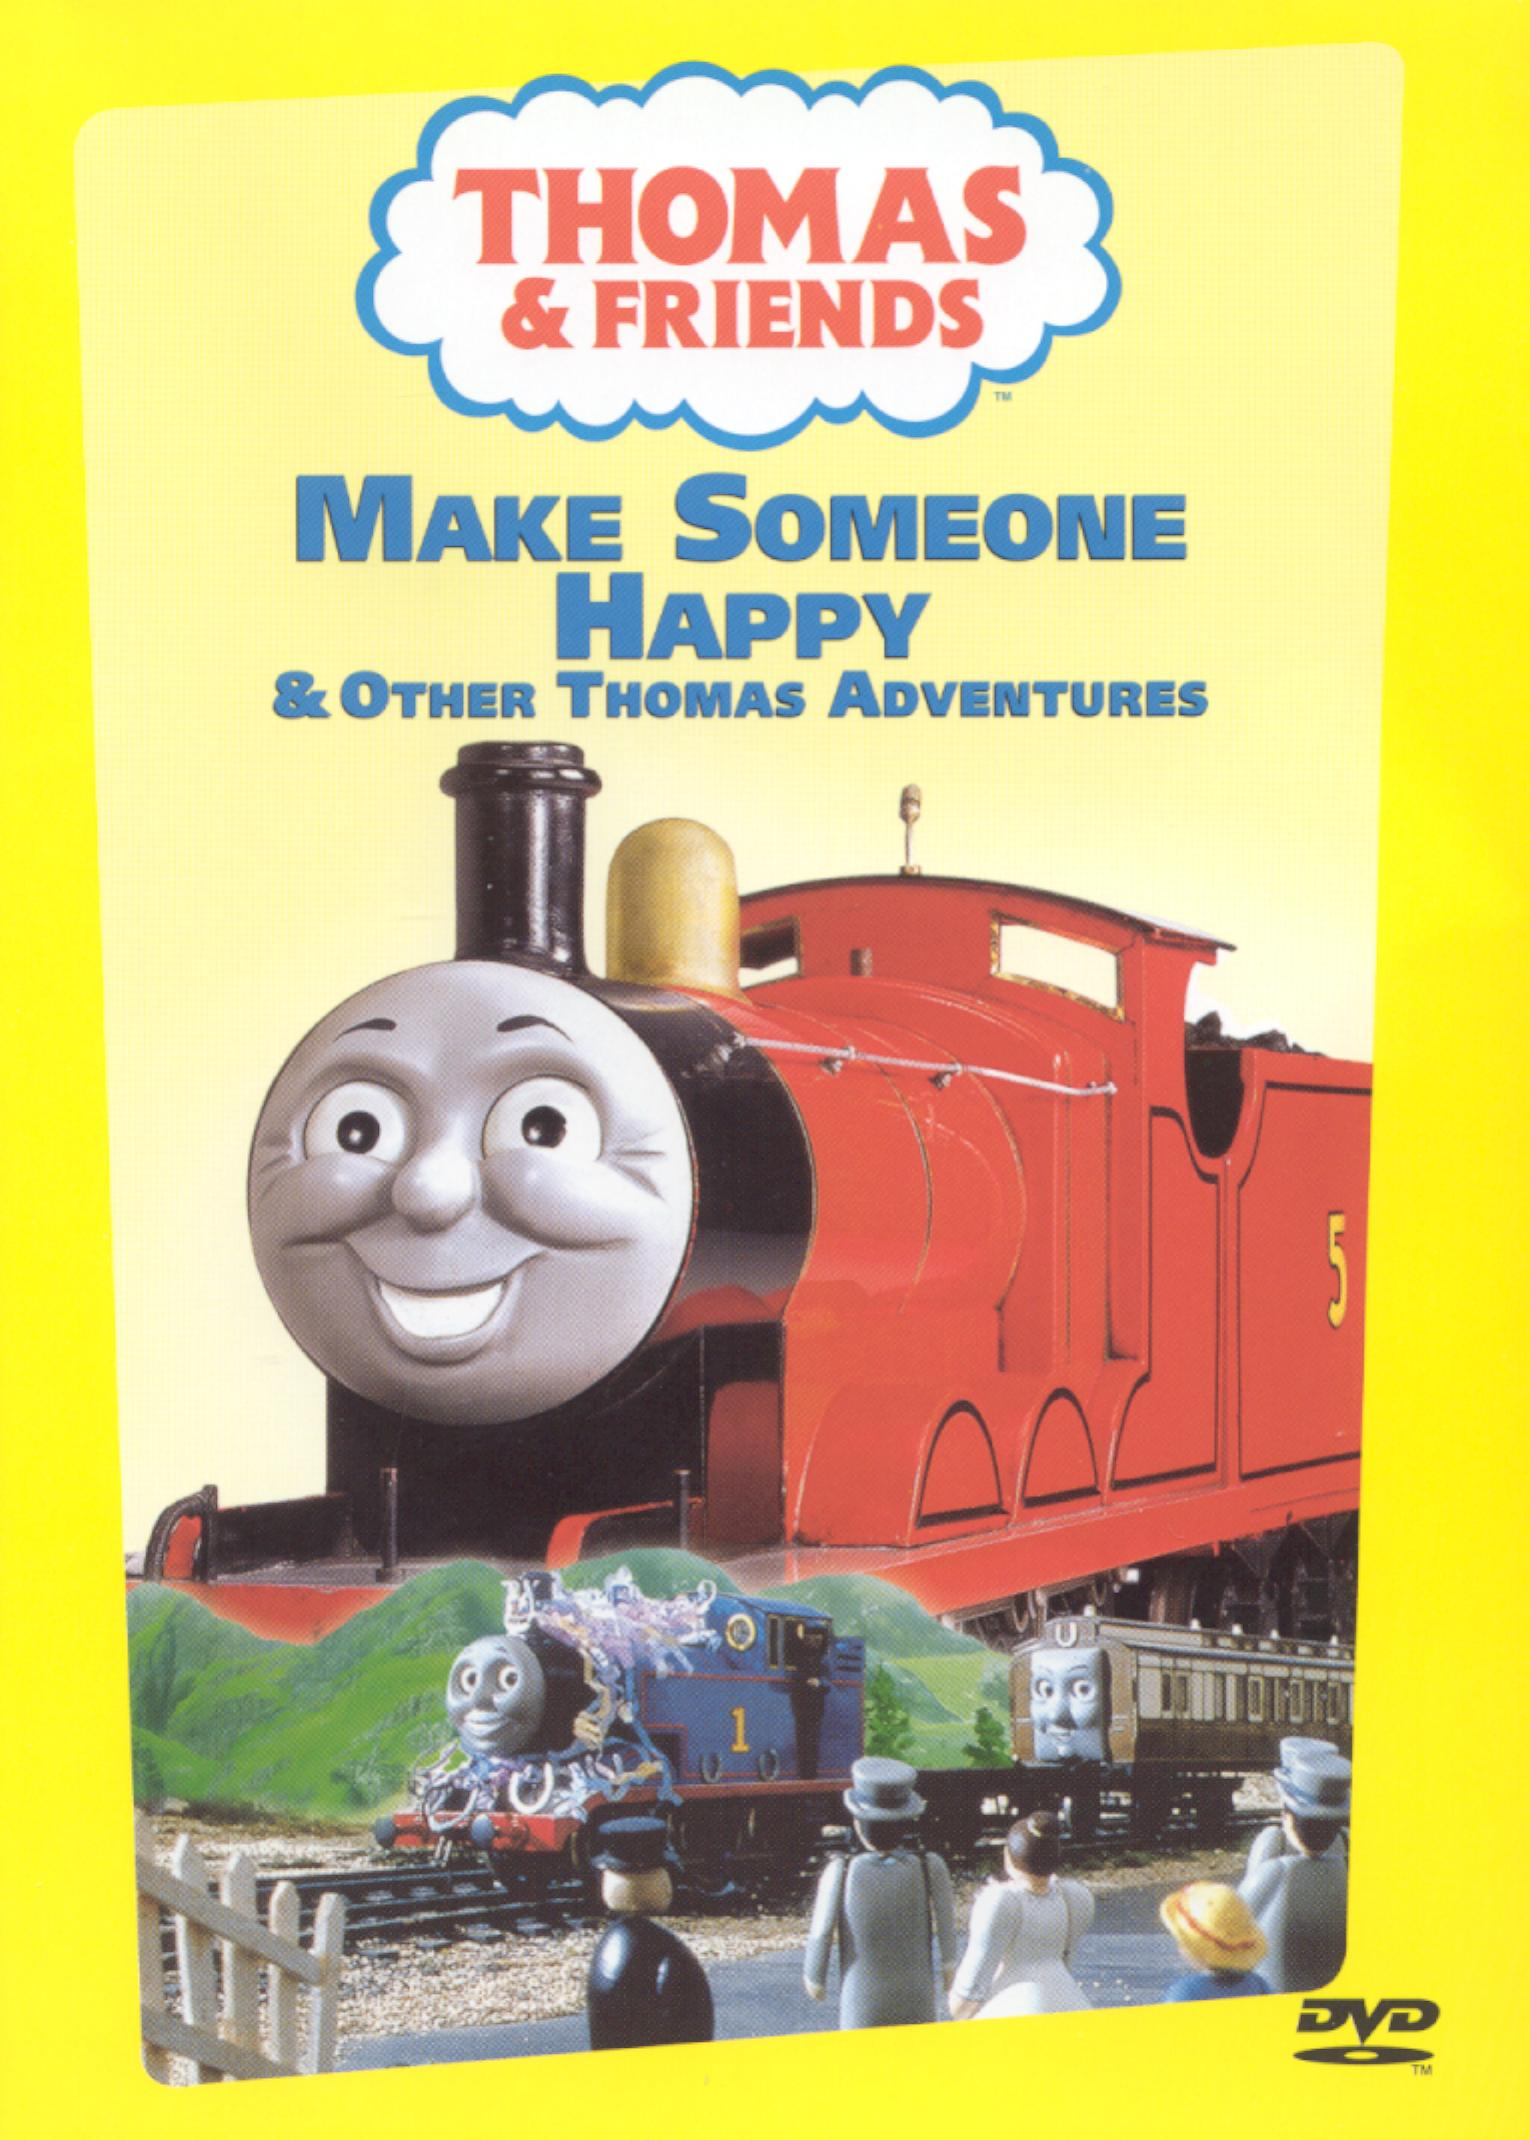 File:MakeSomeoneHappyDVD.jpg